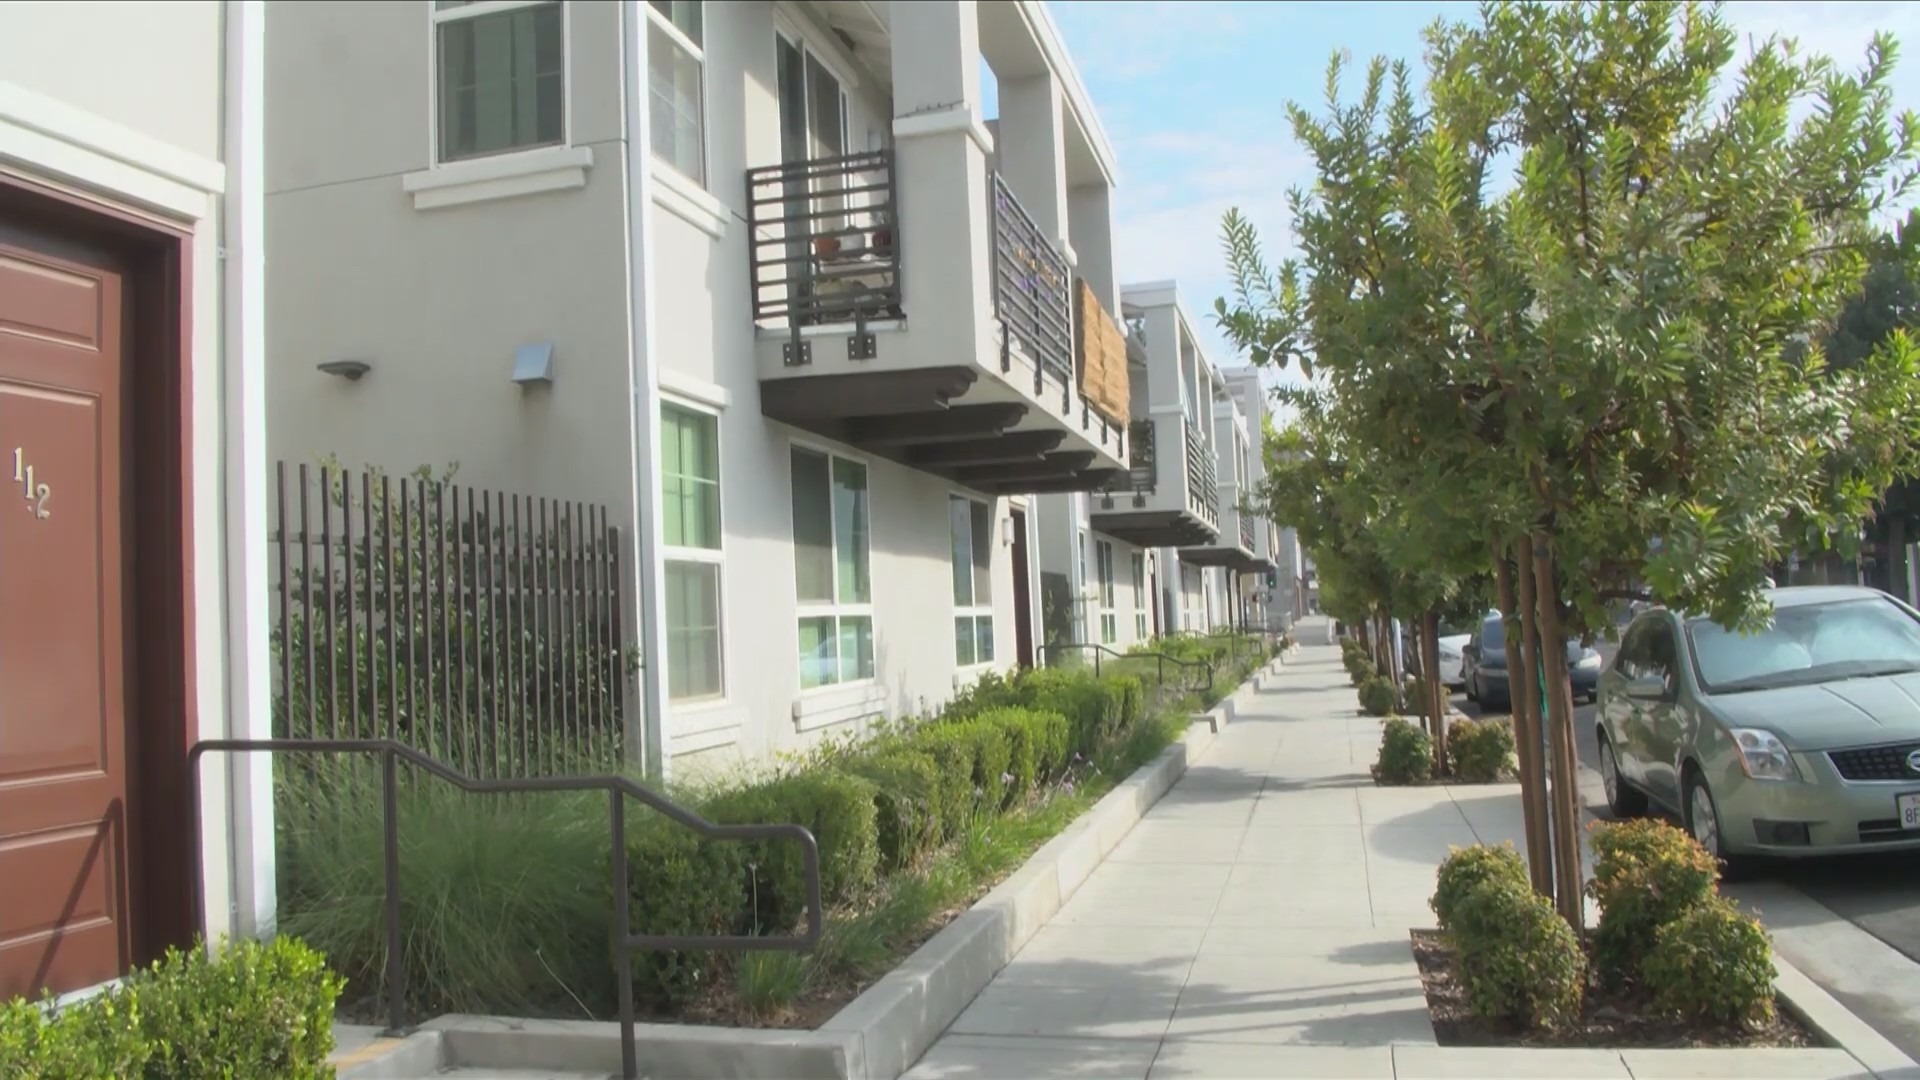 Fresno receives $15.8M COVID relief to help cover rent debt for tenants and landlords